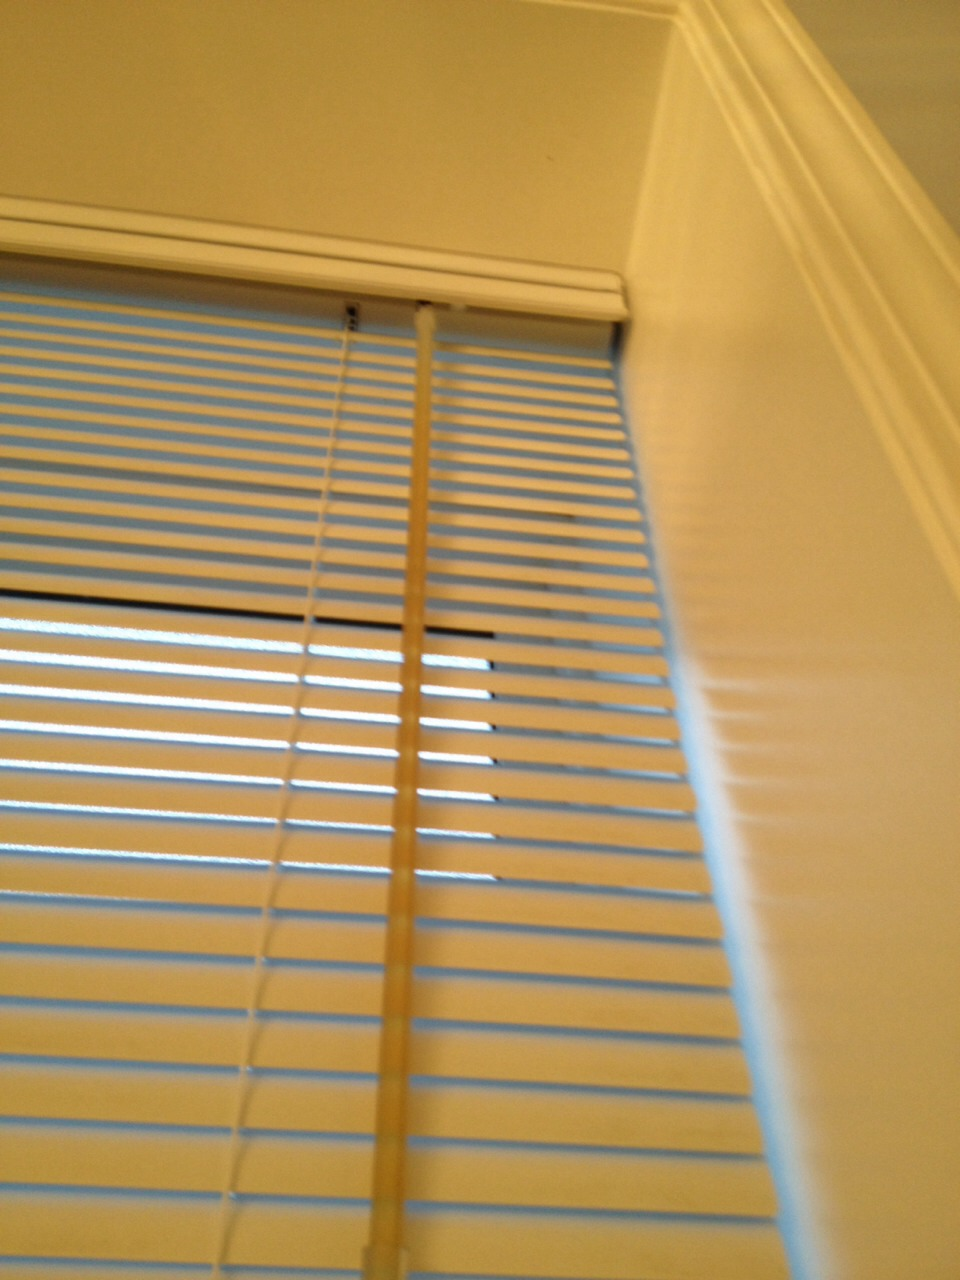 Don't Have A Stir Stick For A Can Of Paint? The Stick That Closes Window Blinds Ways Works Great